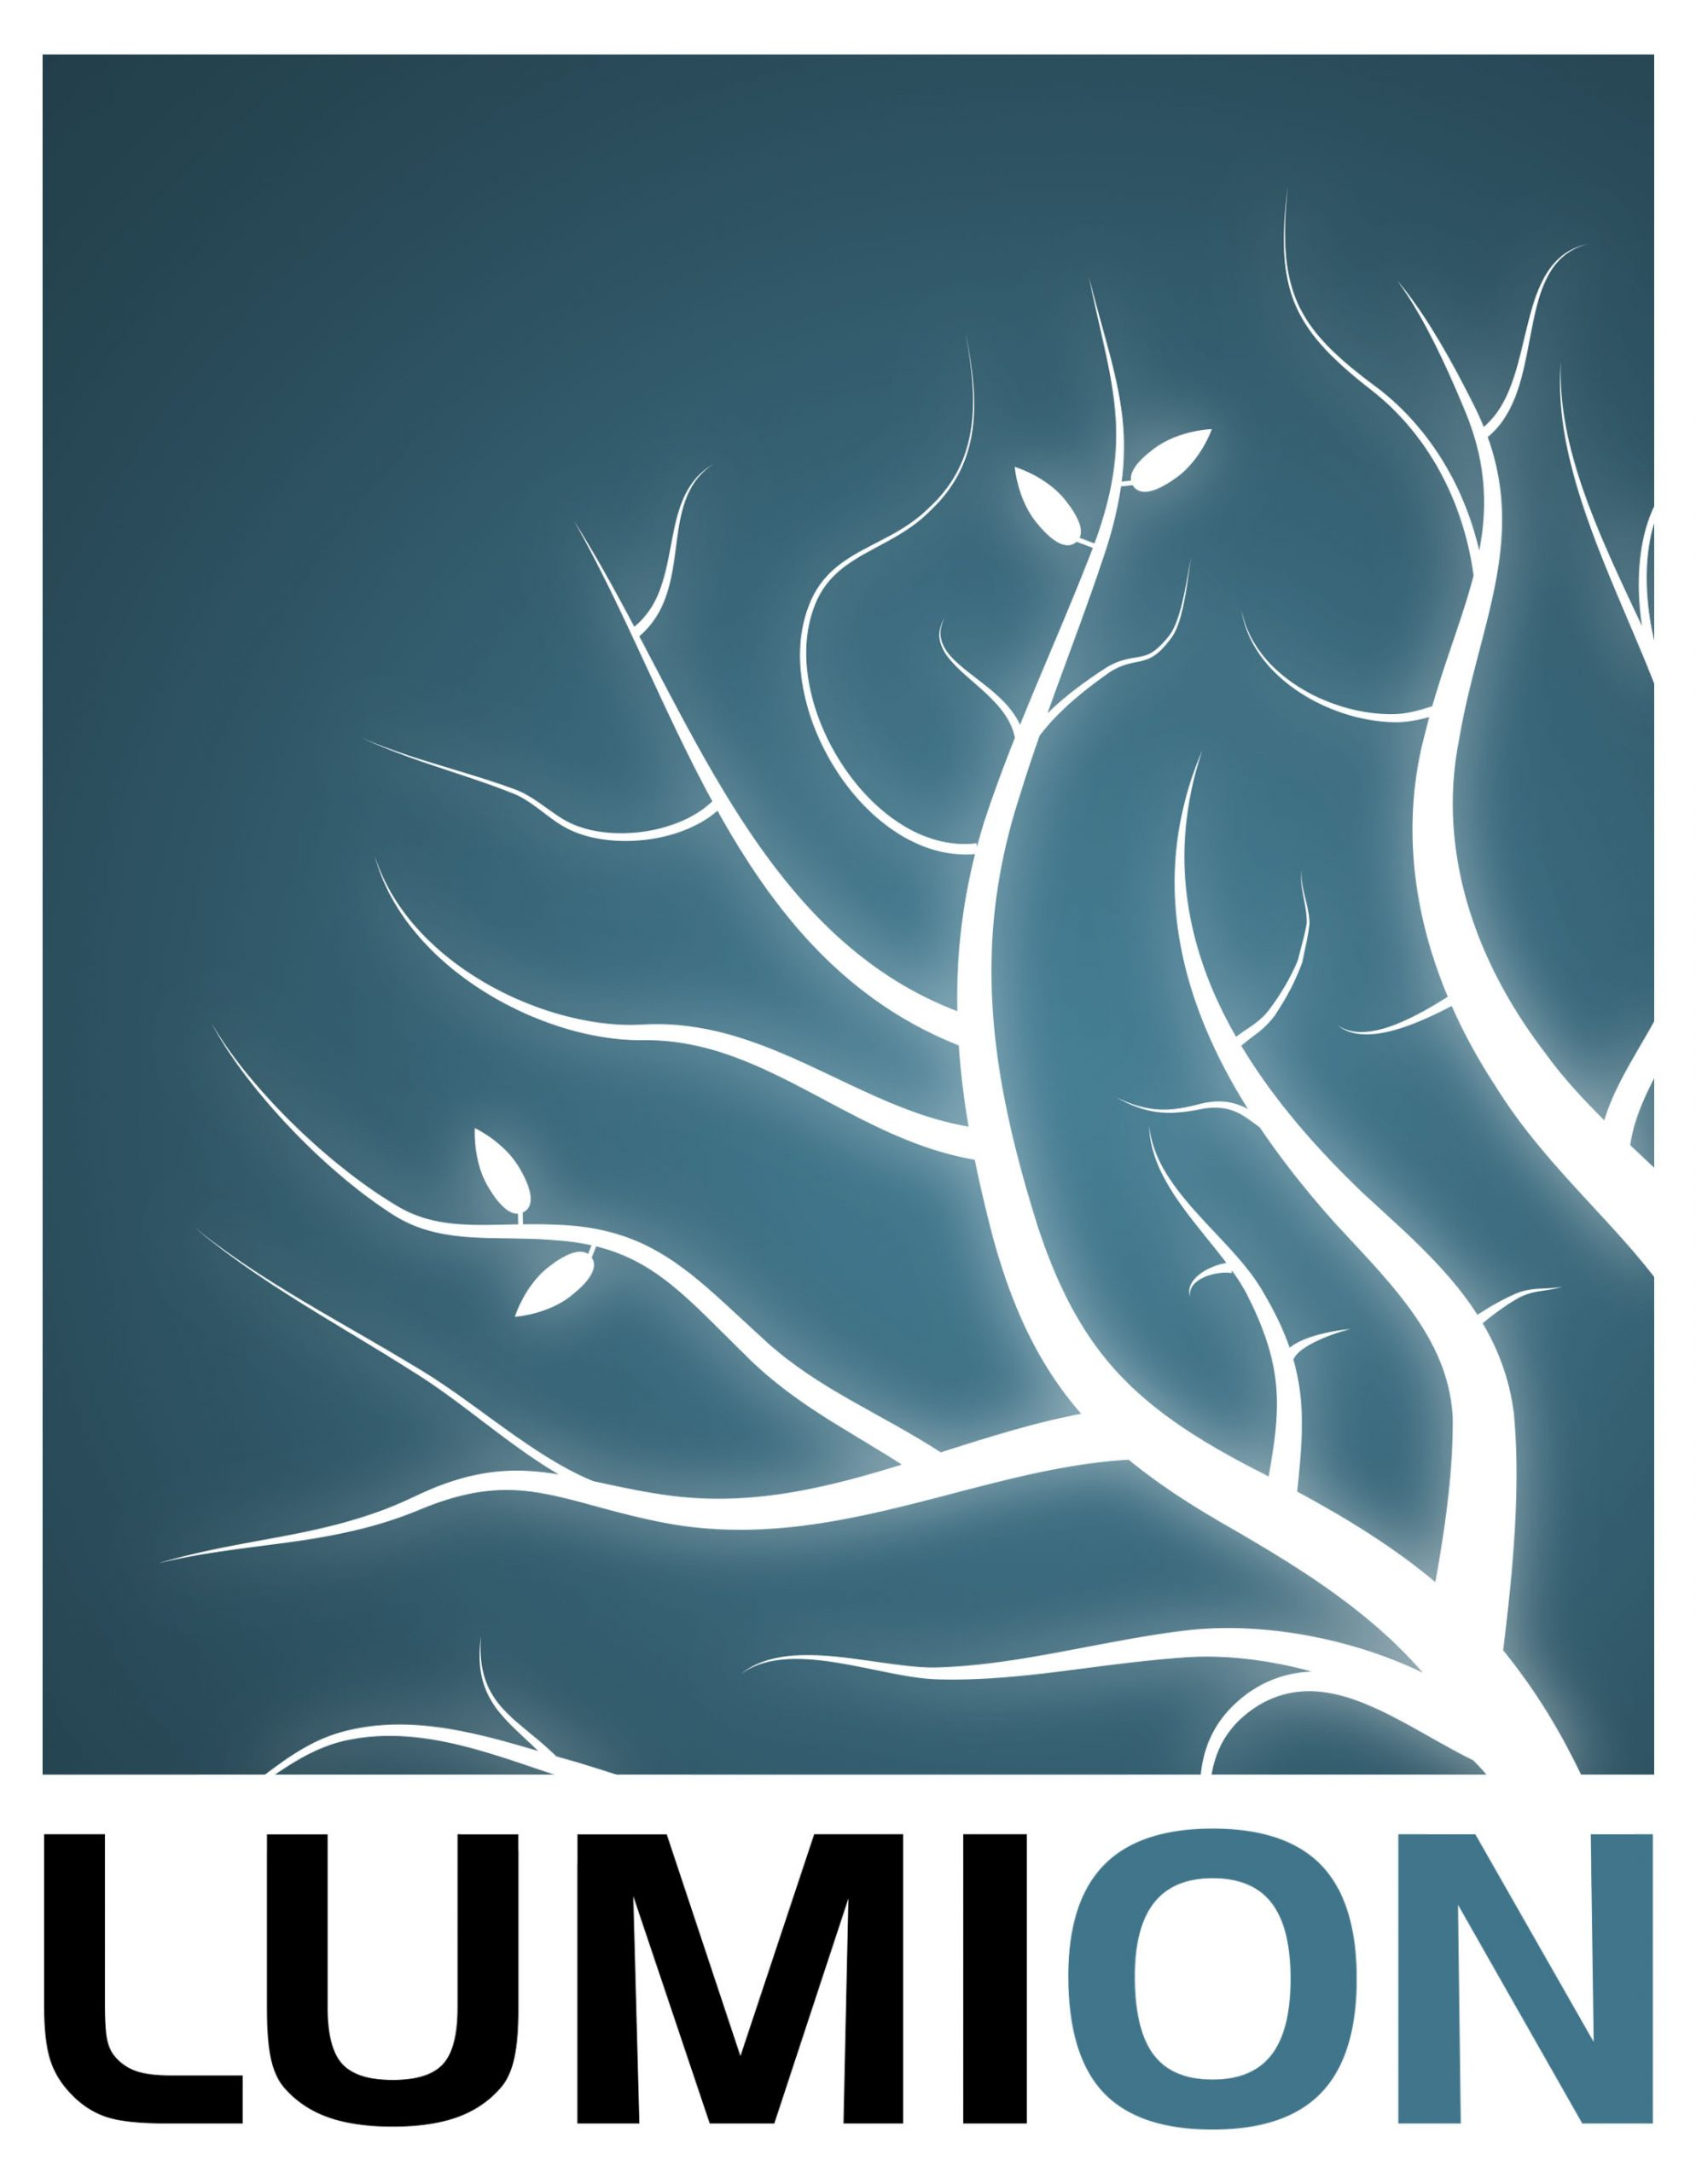 Lumion 12.1 Crack + Activation Key Free[2021]